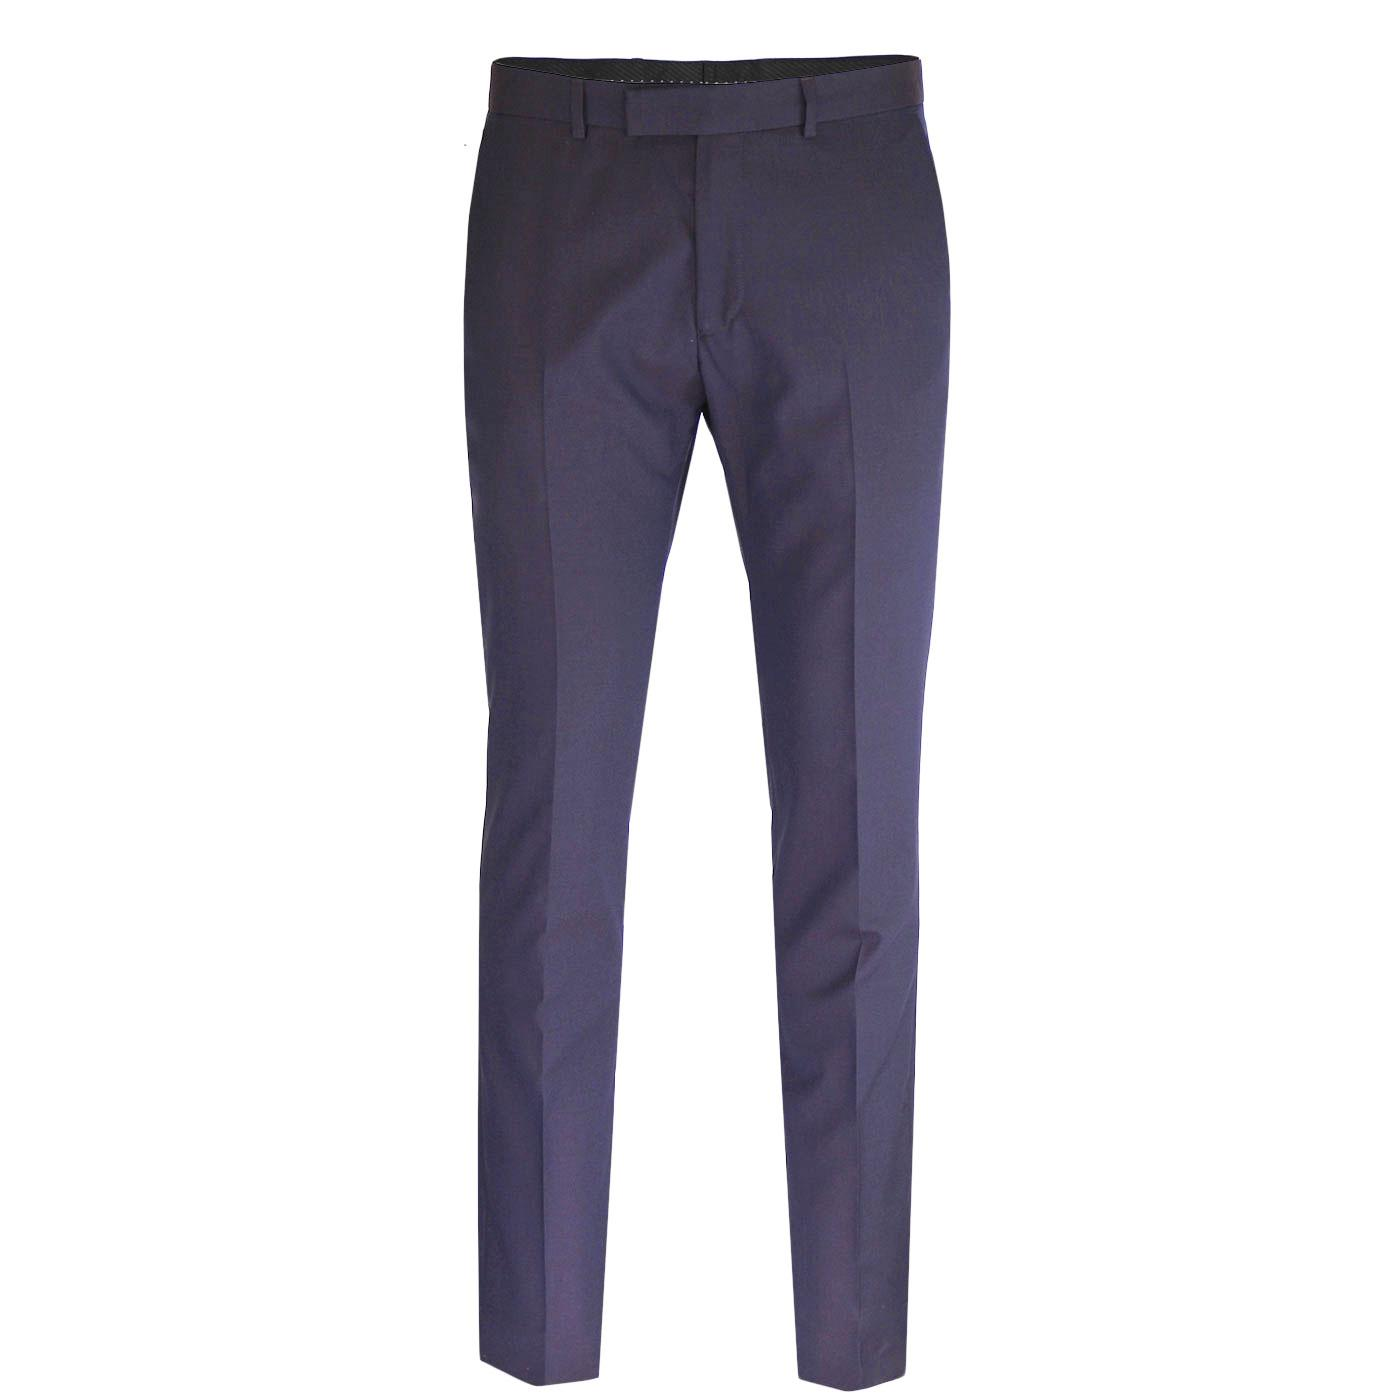 BEN SHERMAN Tailoring Mod Tonic Suit Trousers (A)